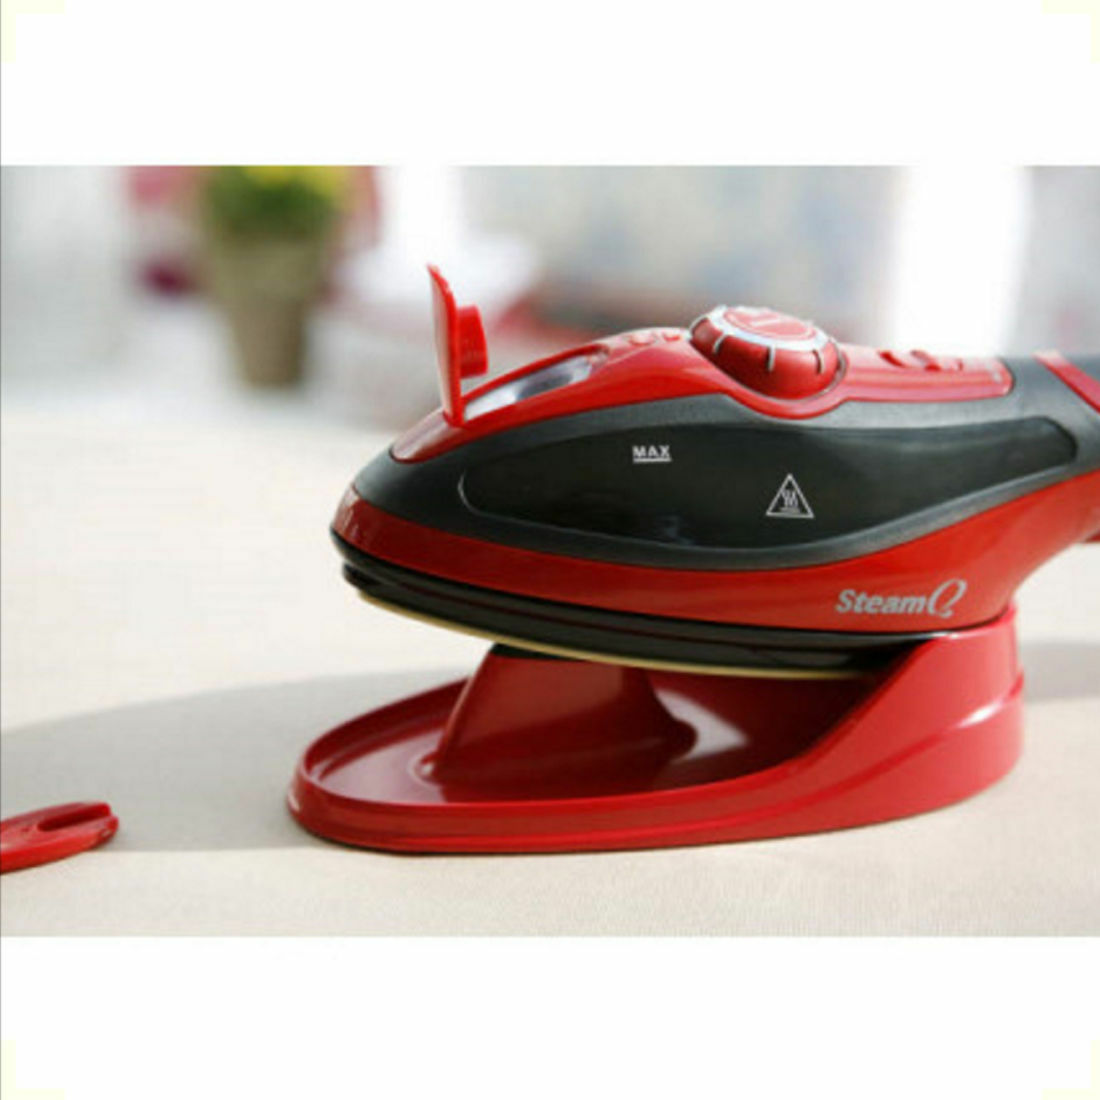 GOODWAY Steam Q II Double-Hotplate Smart All-in-one Iron and Sterilizer w  3Head